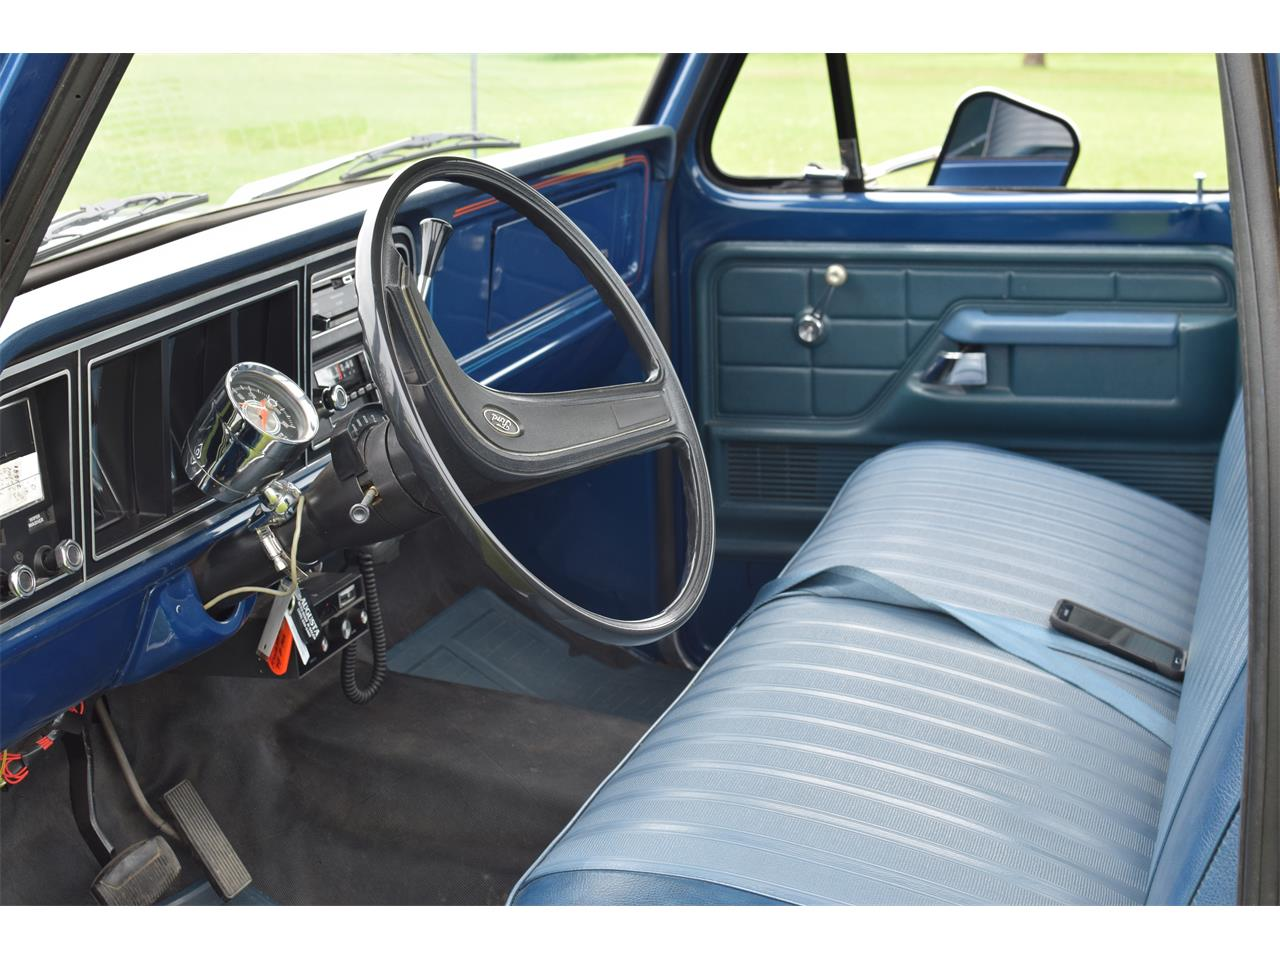 Large Picture of '74 Ford F150 located in Watertown Minnesota - $15,000.00 - OOQE